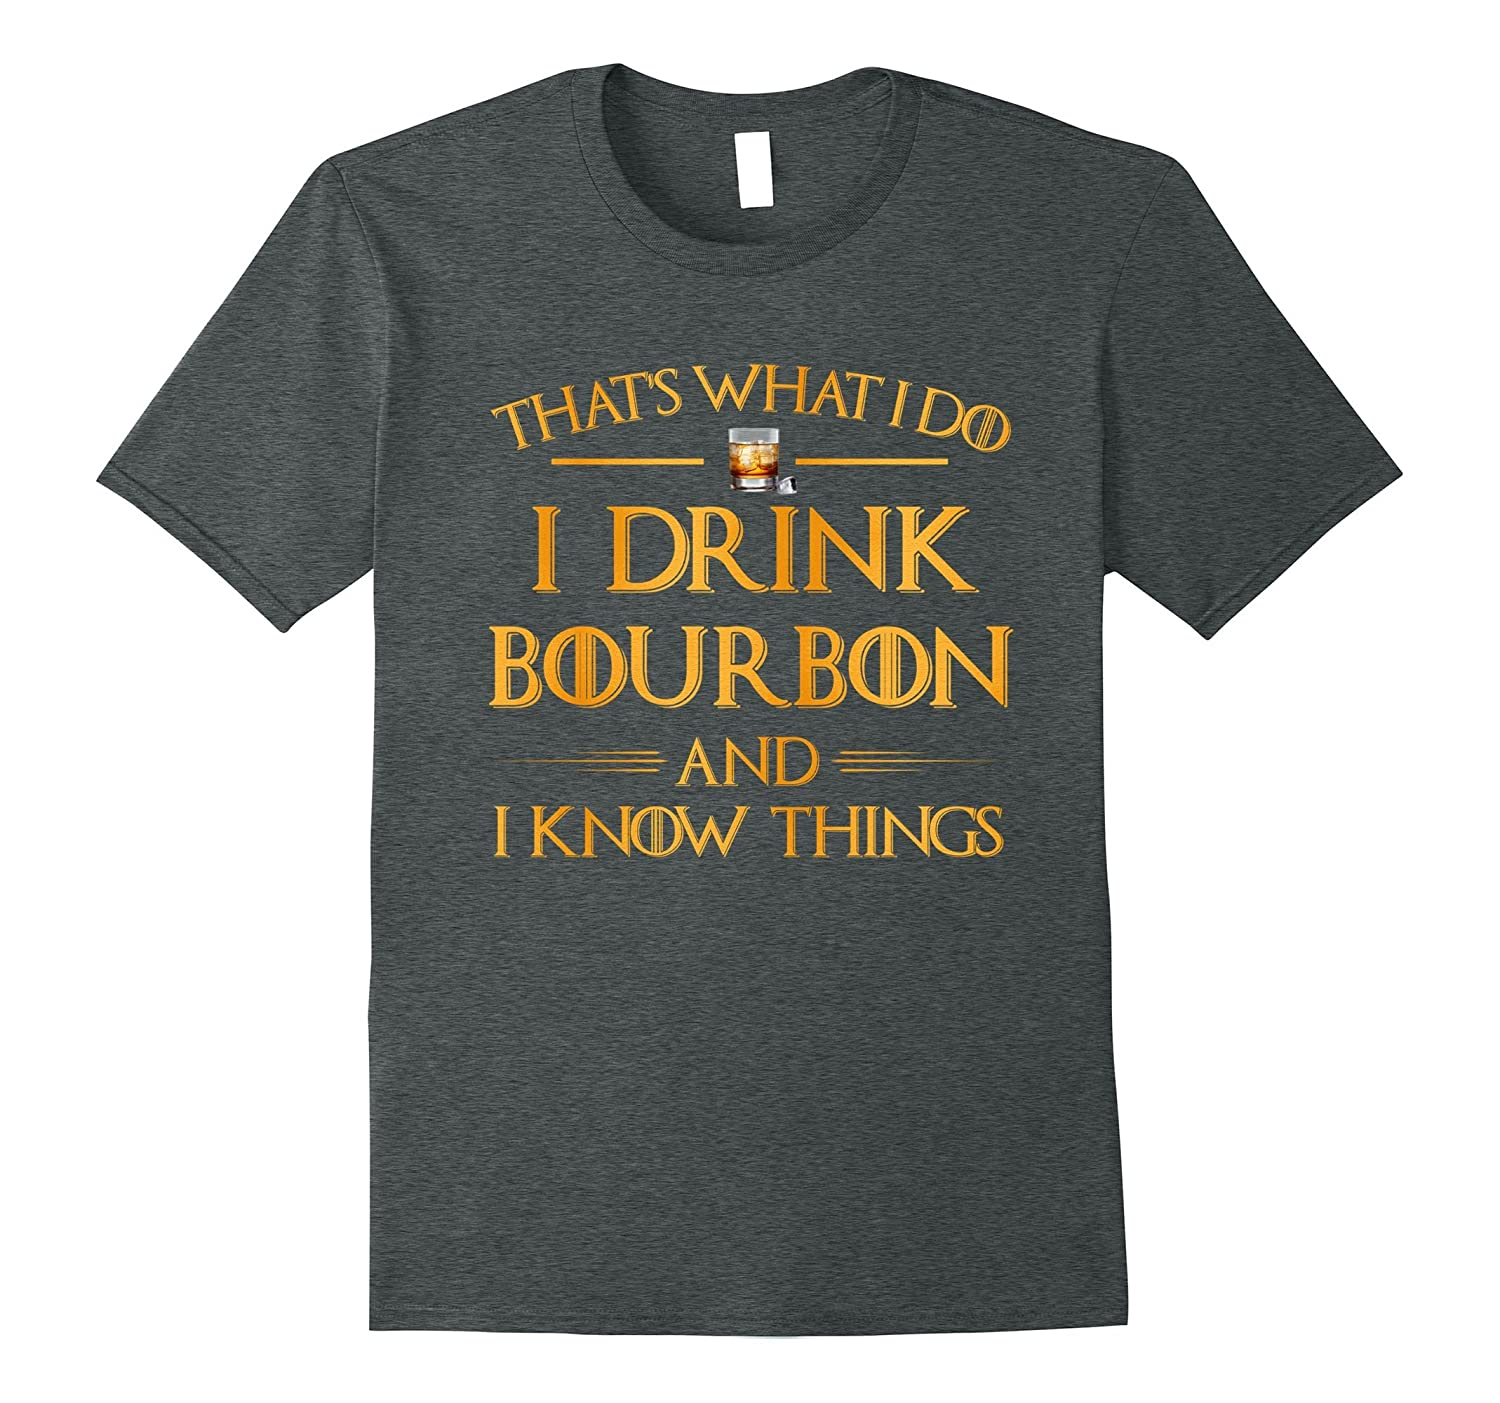 I Drink Bourbon And I Know Things – Funny Drinking T-Shirt